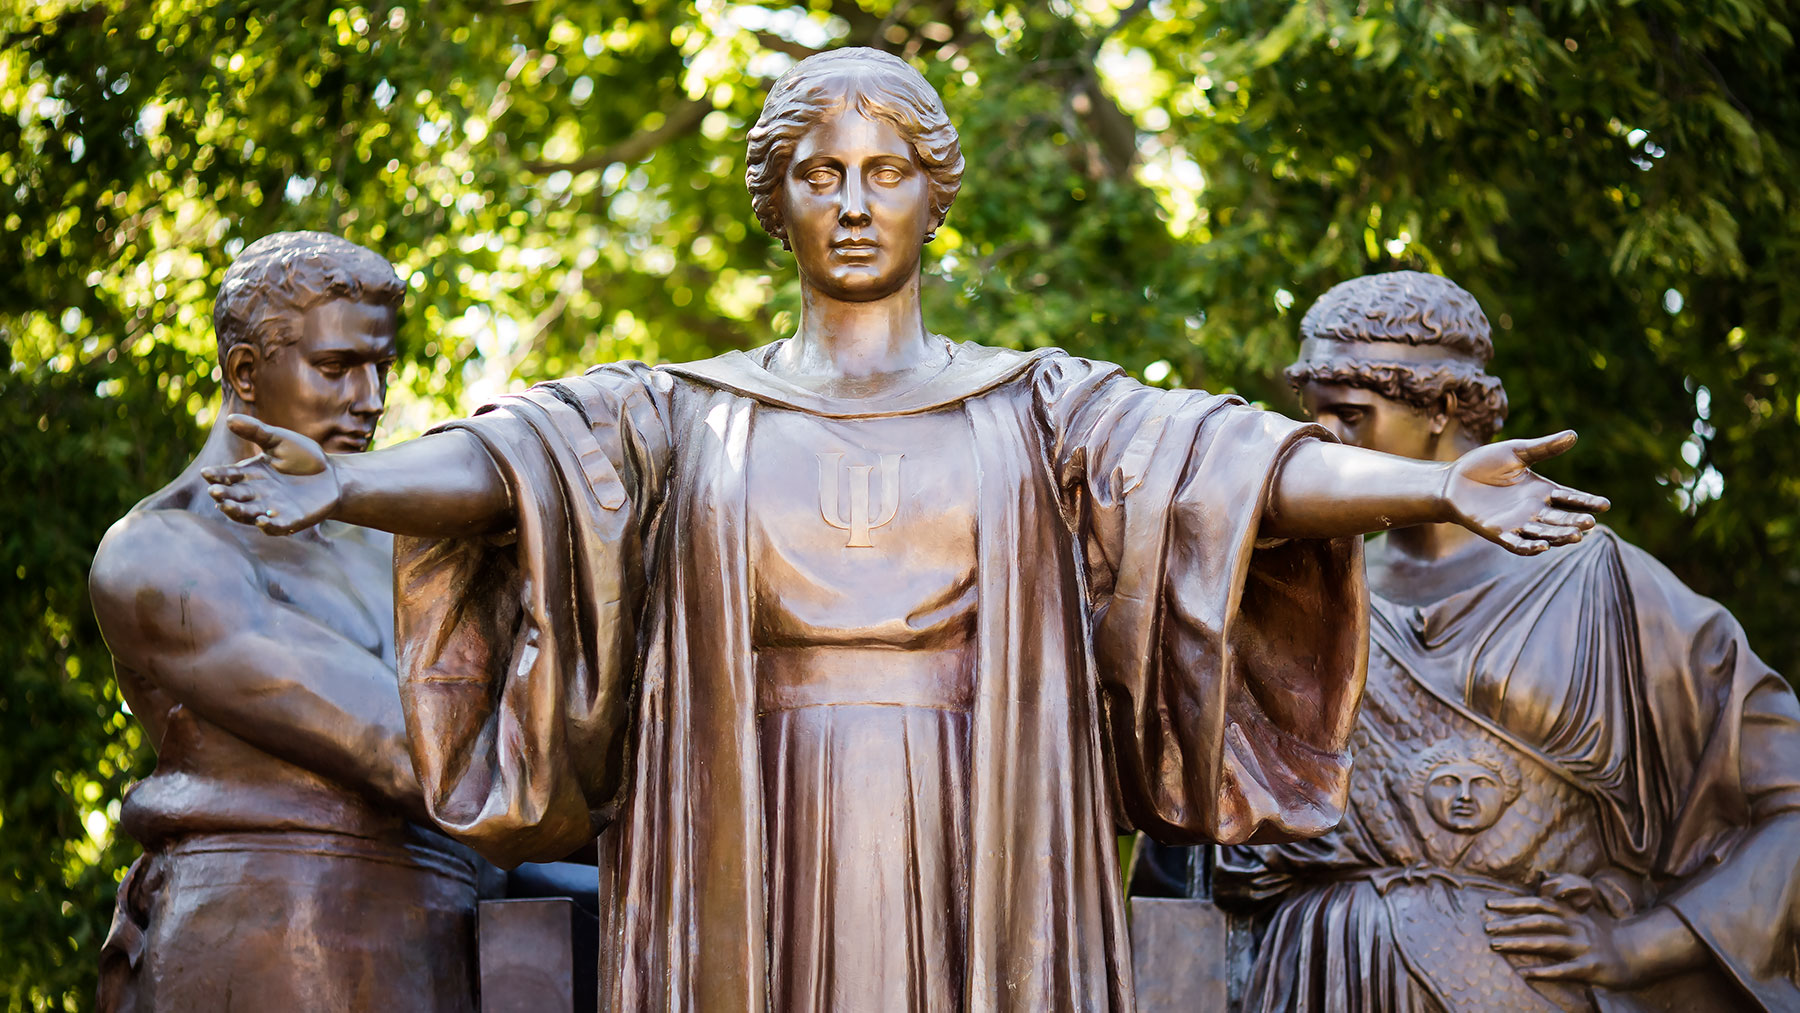 image of the Alma Mater statue by L. Brian Stauffer